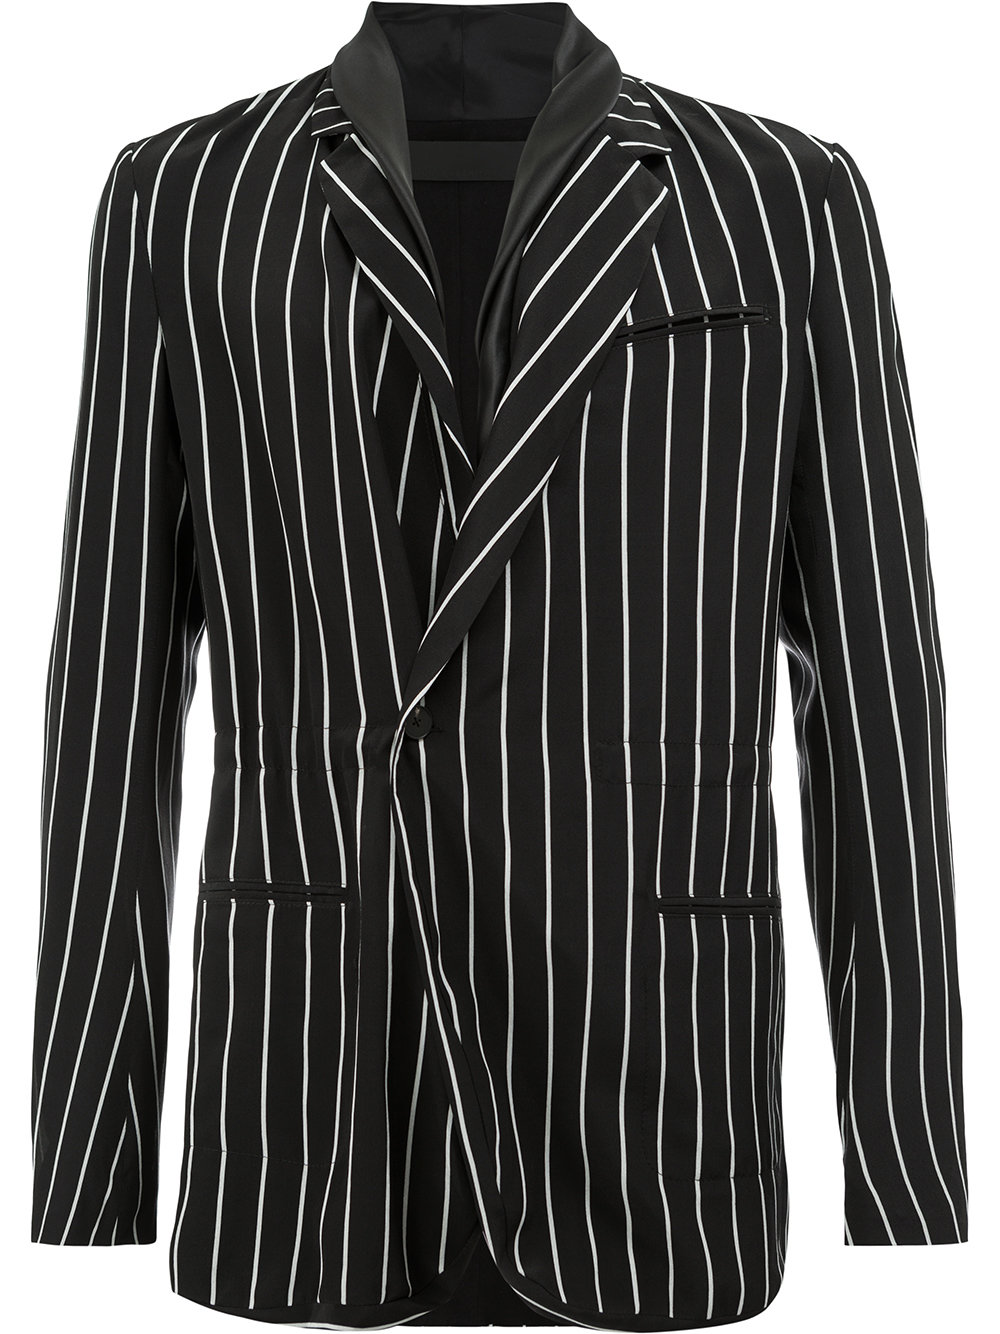 Haider Ackermann   Black and White Striped Blazer With Soft Lapel